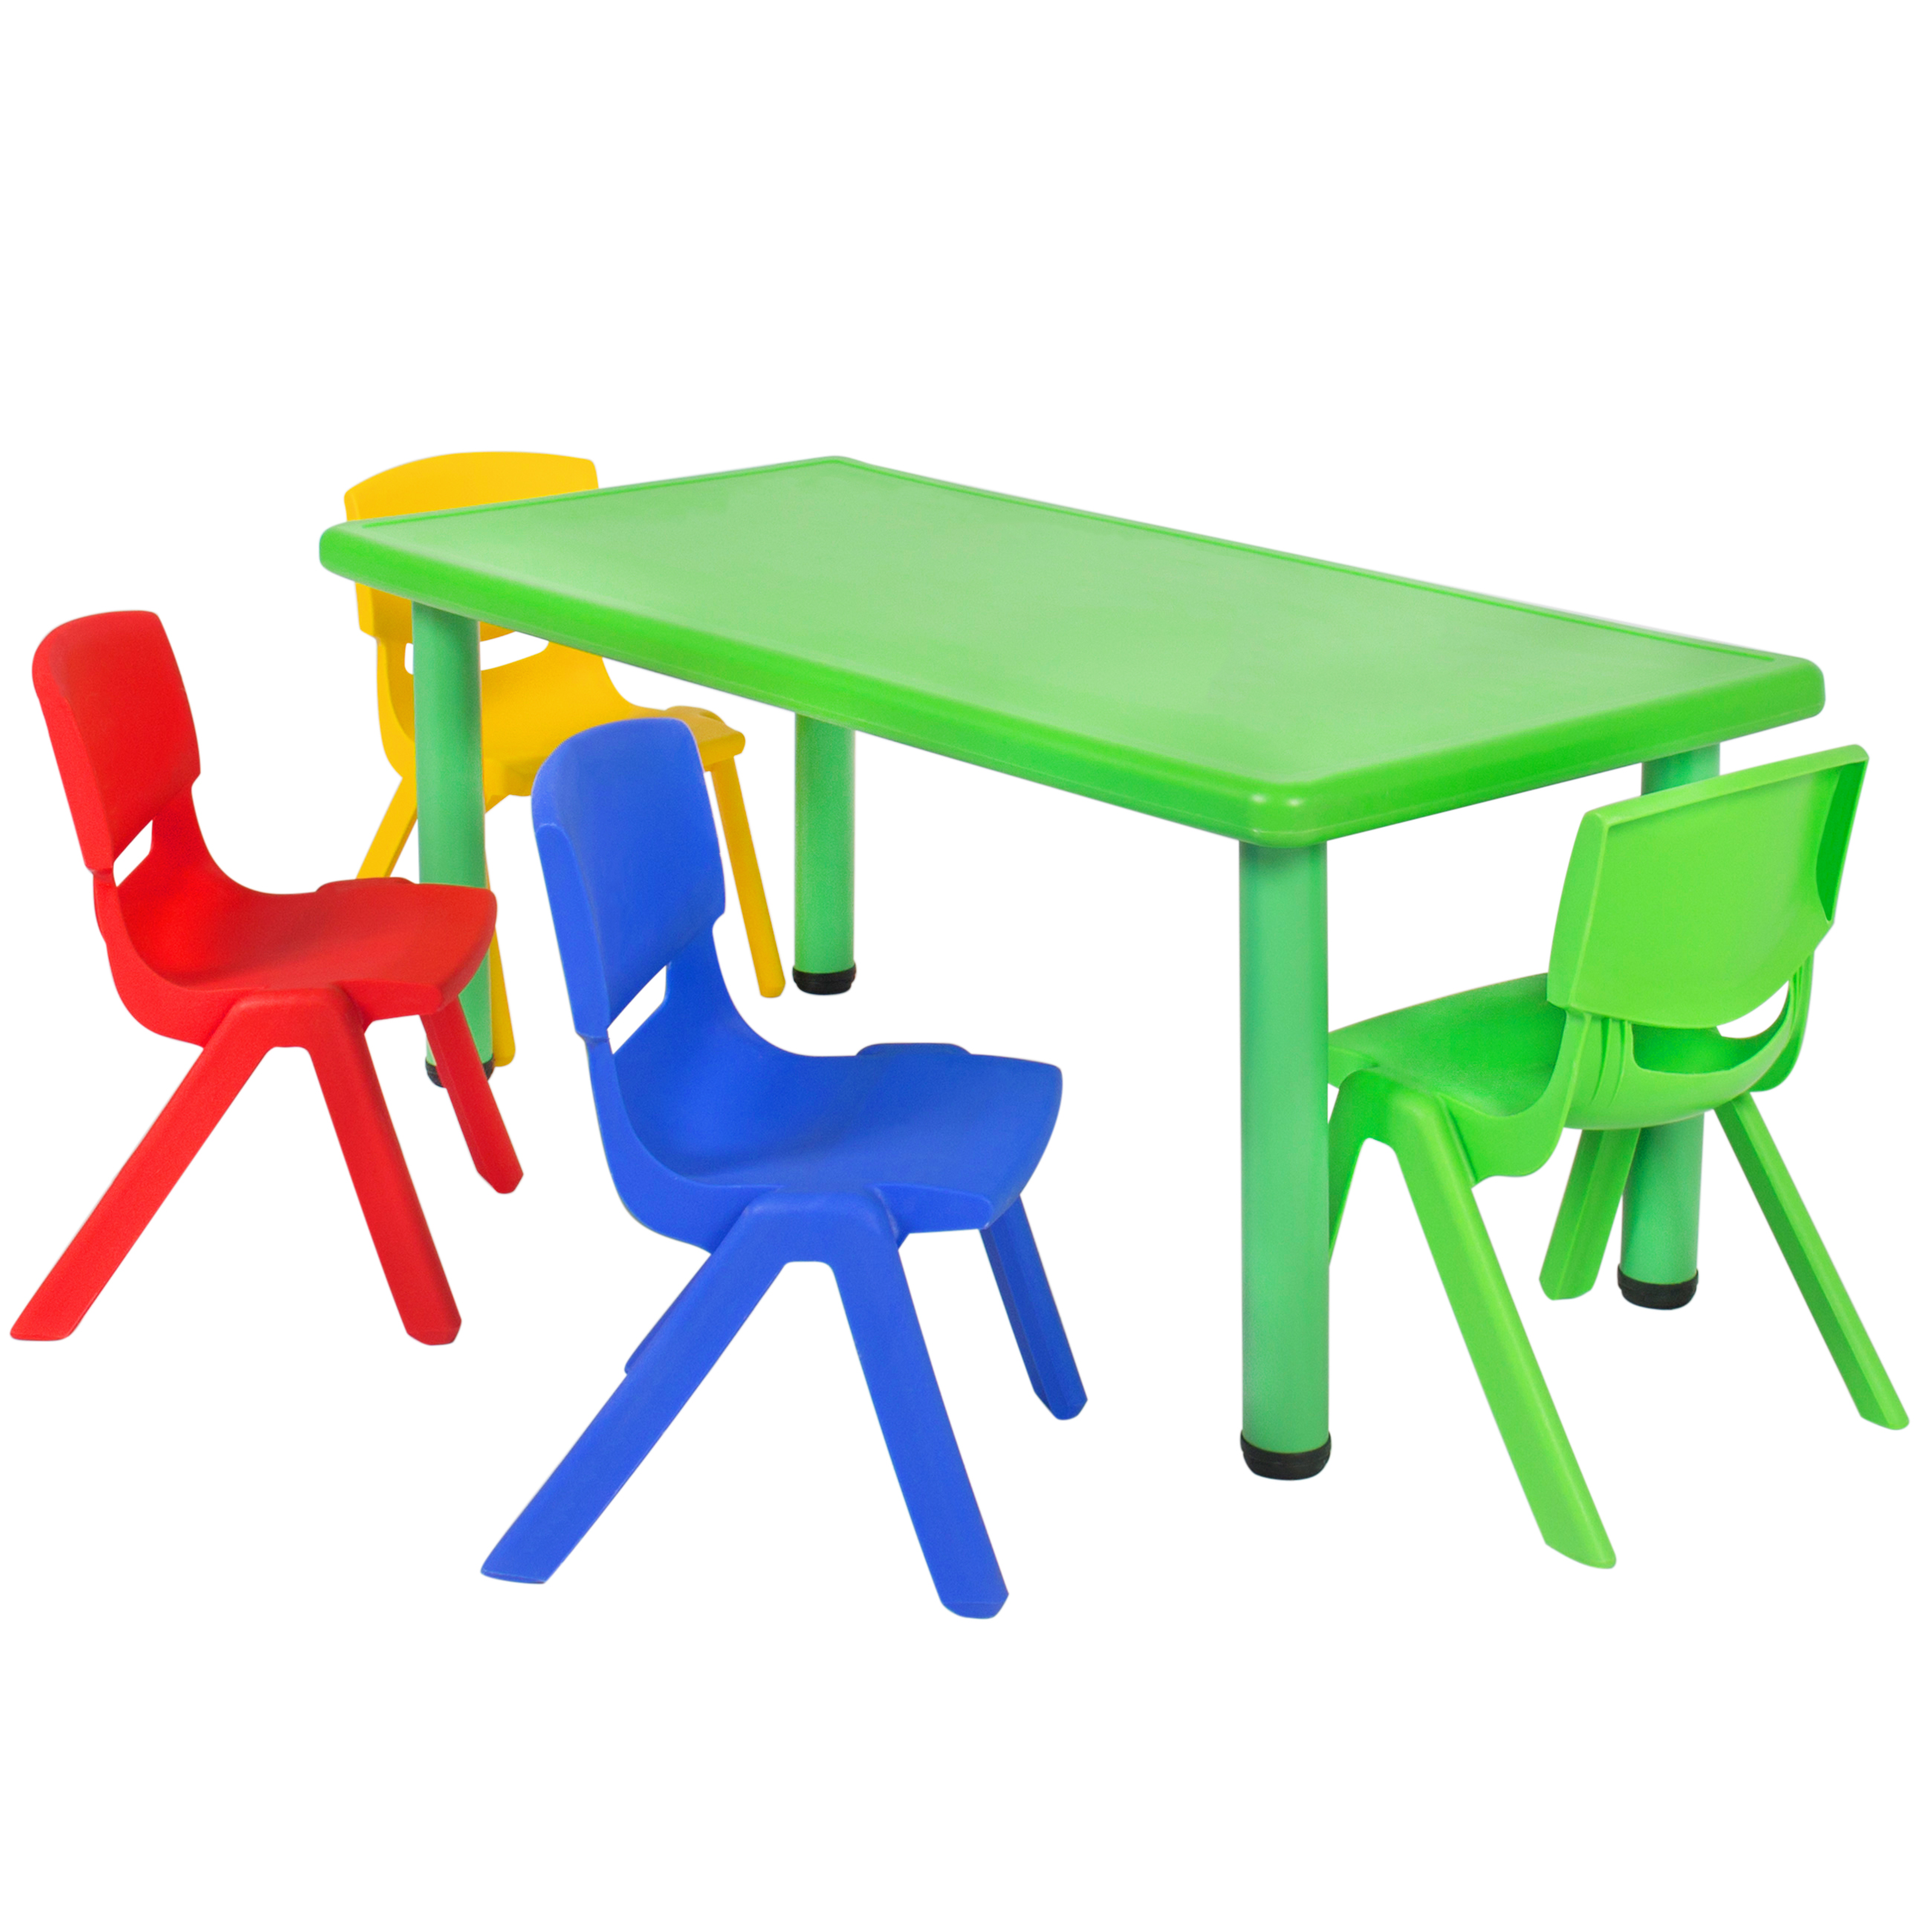 Best Choice Products Kids 5 Piece Plastic Play Room Furniture Activity  Table Set W/ 4 Chairs For Home, School, Play, Fun   Multicolor   Walmart.com